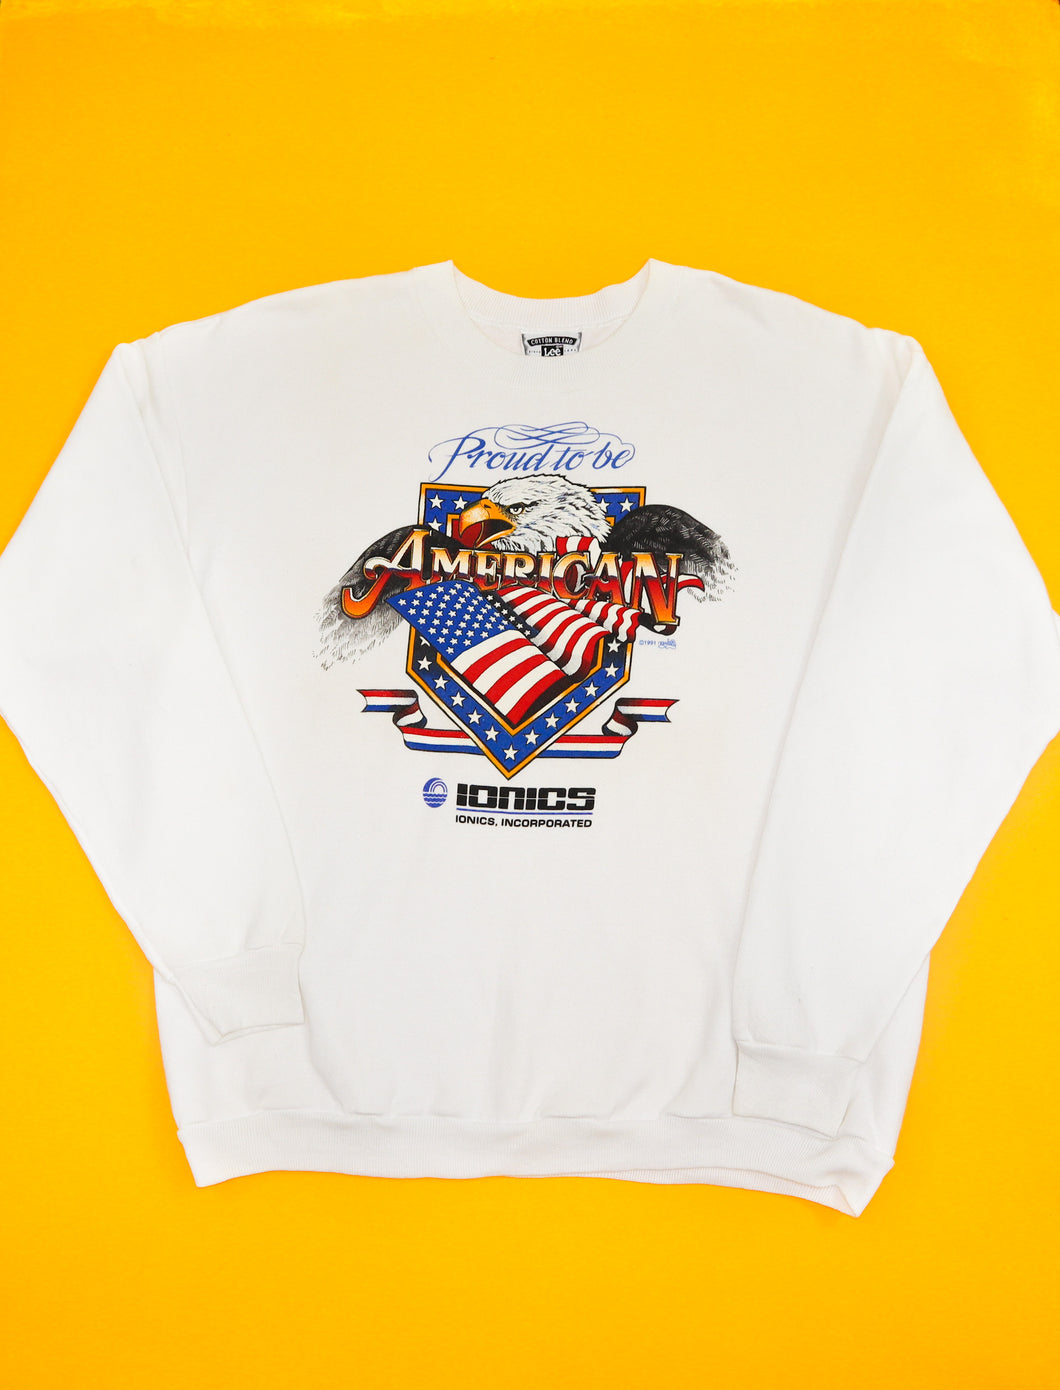 1991 Vintage 'Proud to be an American' Sweatshirt